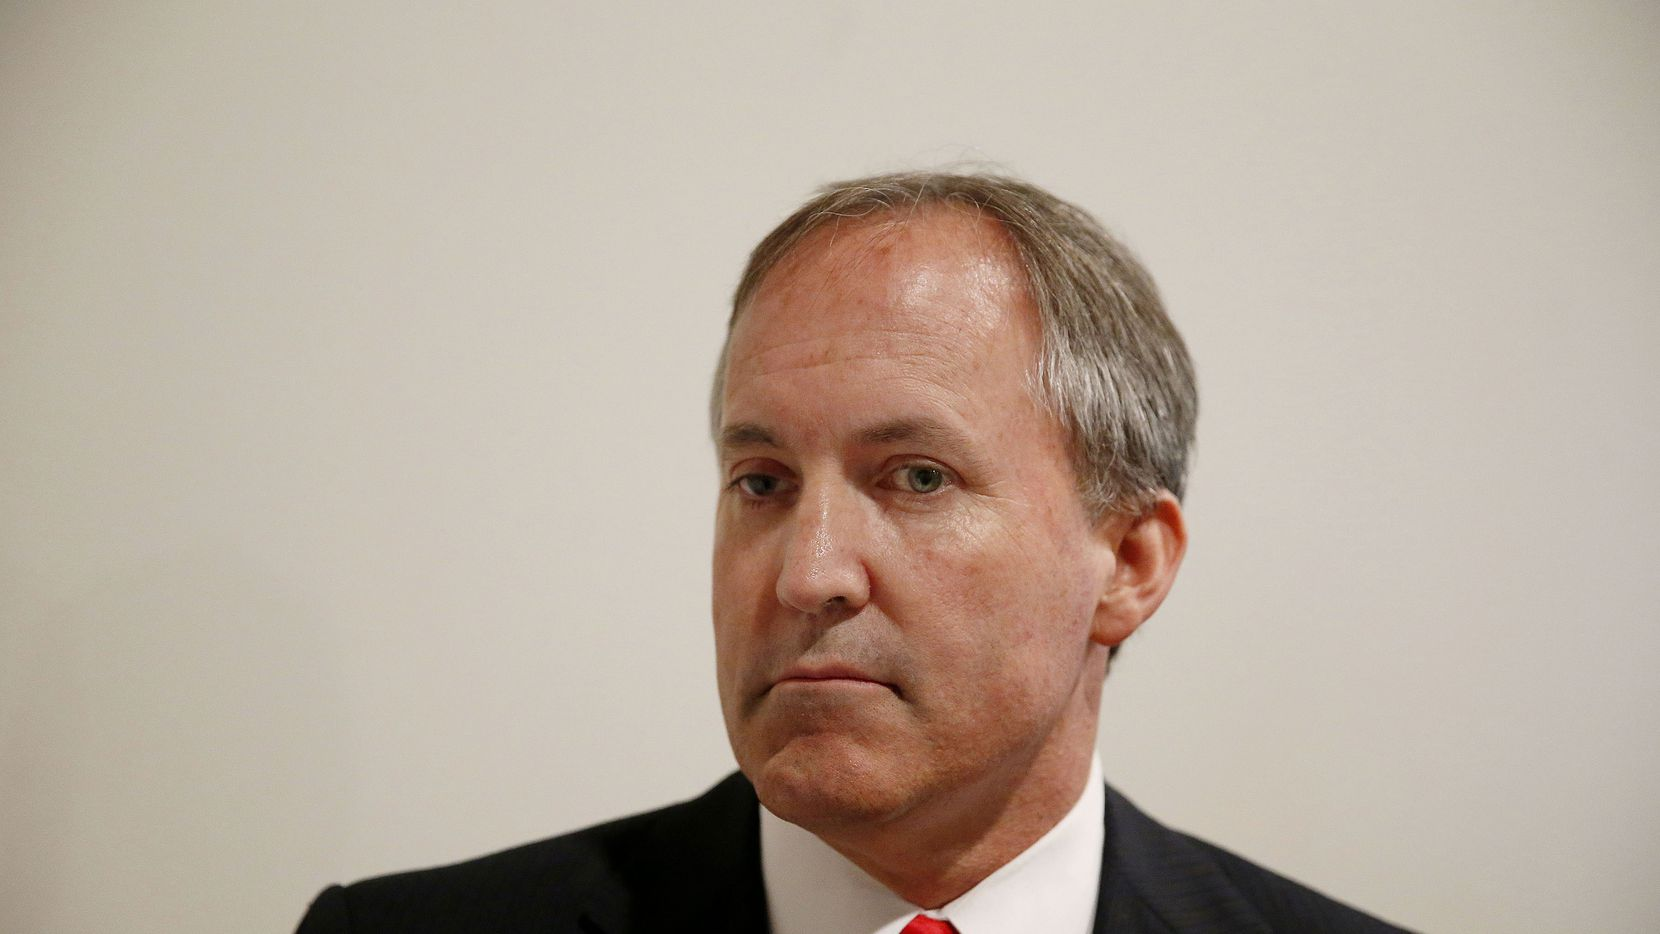 Texas Attorney General Ken Paxton heads to court in May on felony fraud charges. His prosecution has cost Collin County, whose taxpayers are footing the bill, more than $575,000 as of January 2017. (File 2015/The Dallas Morning News)